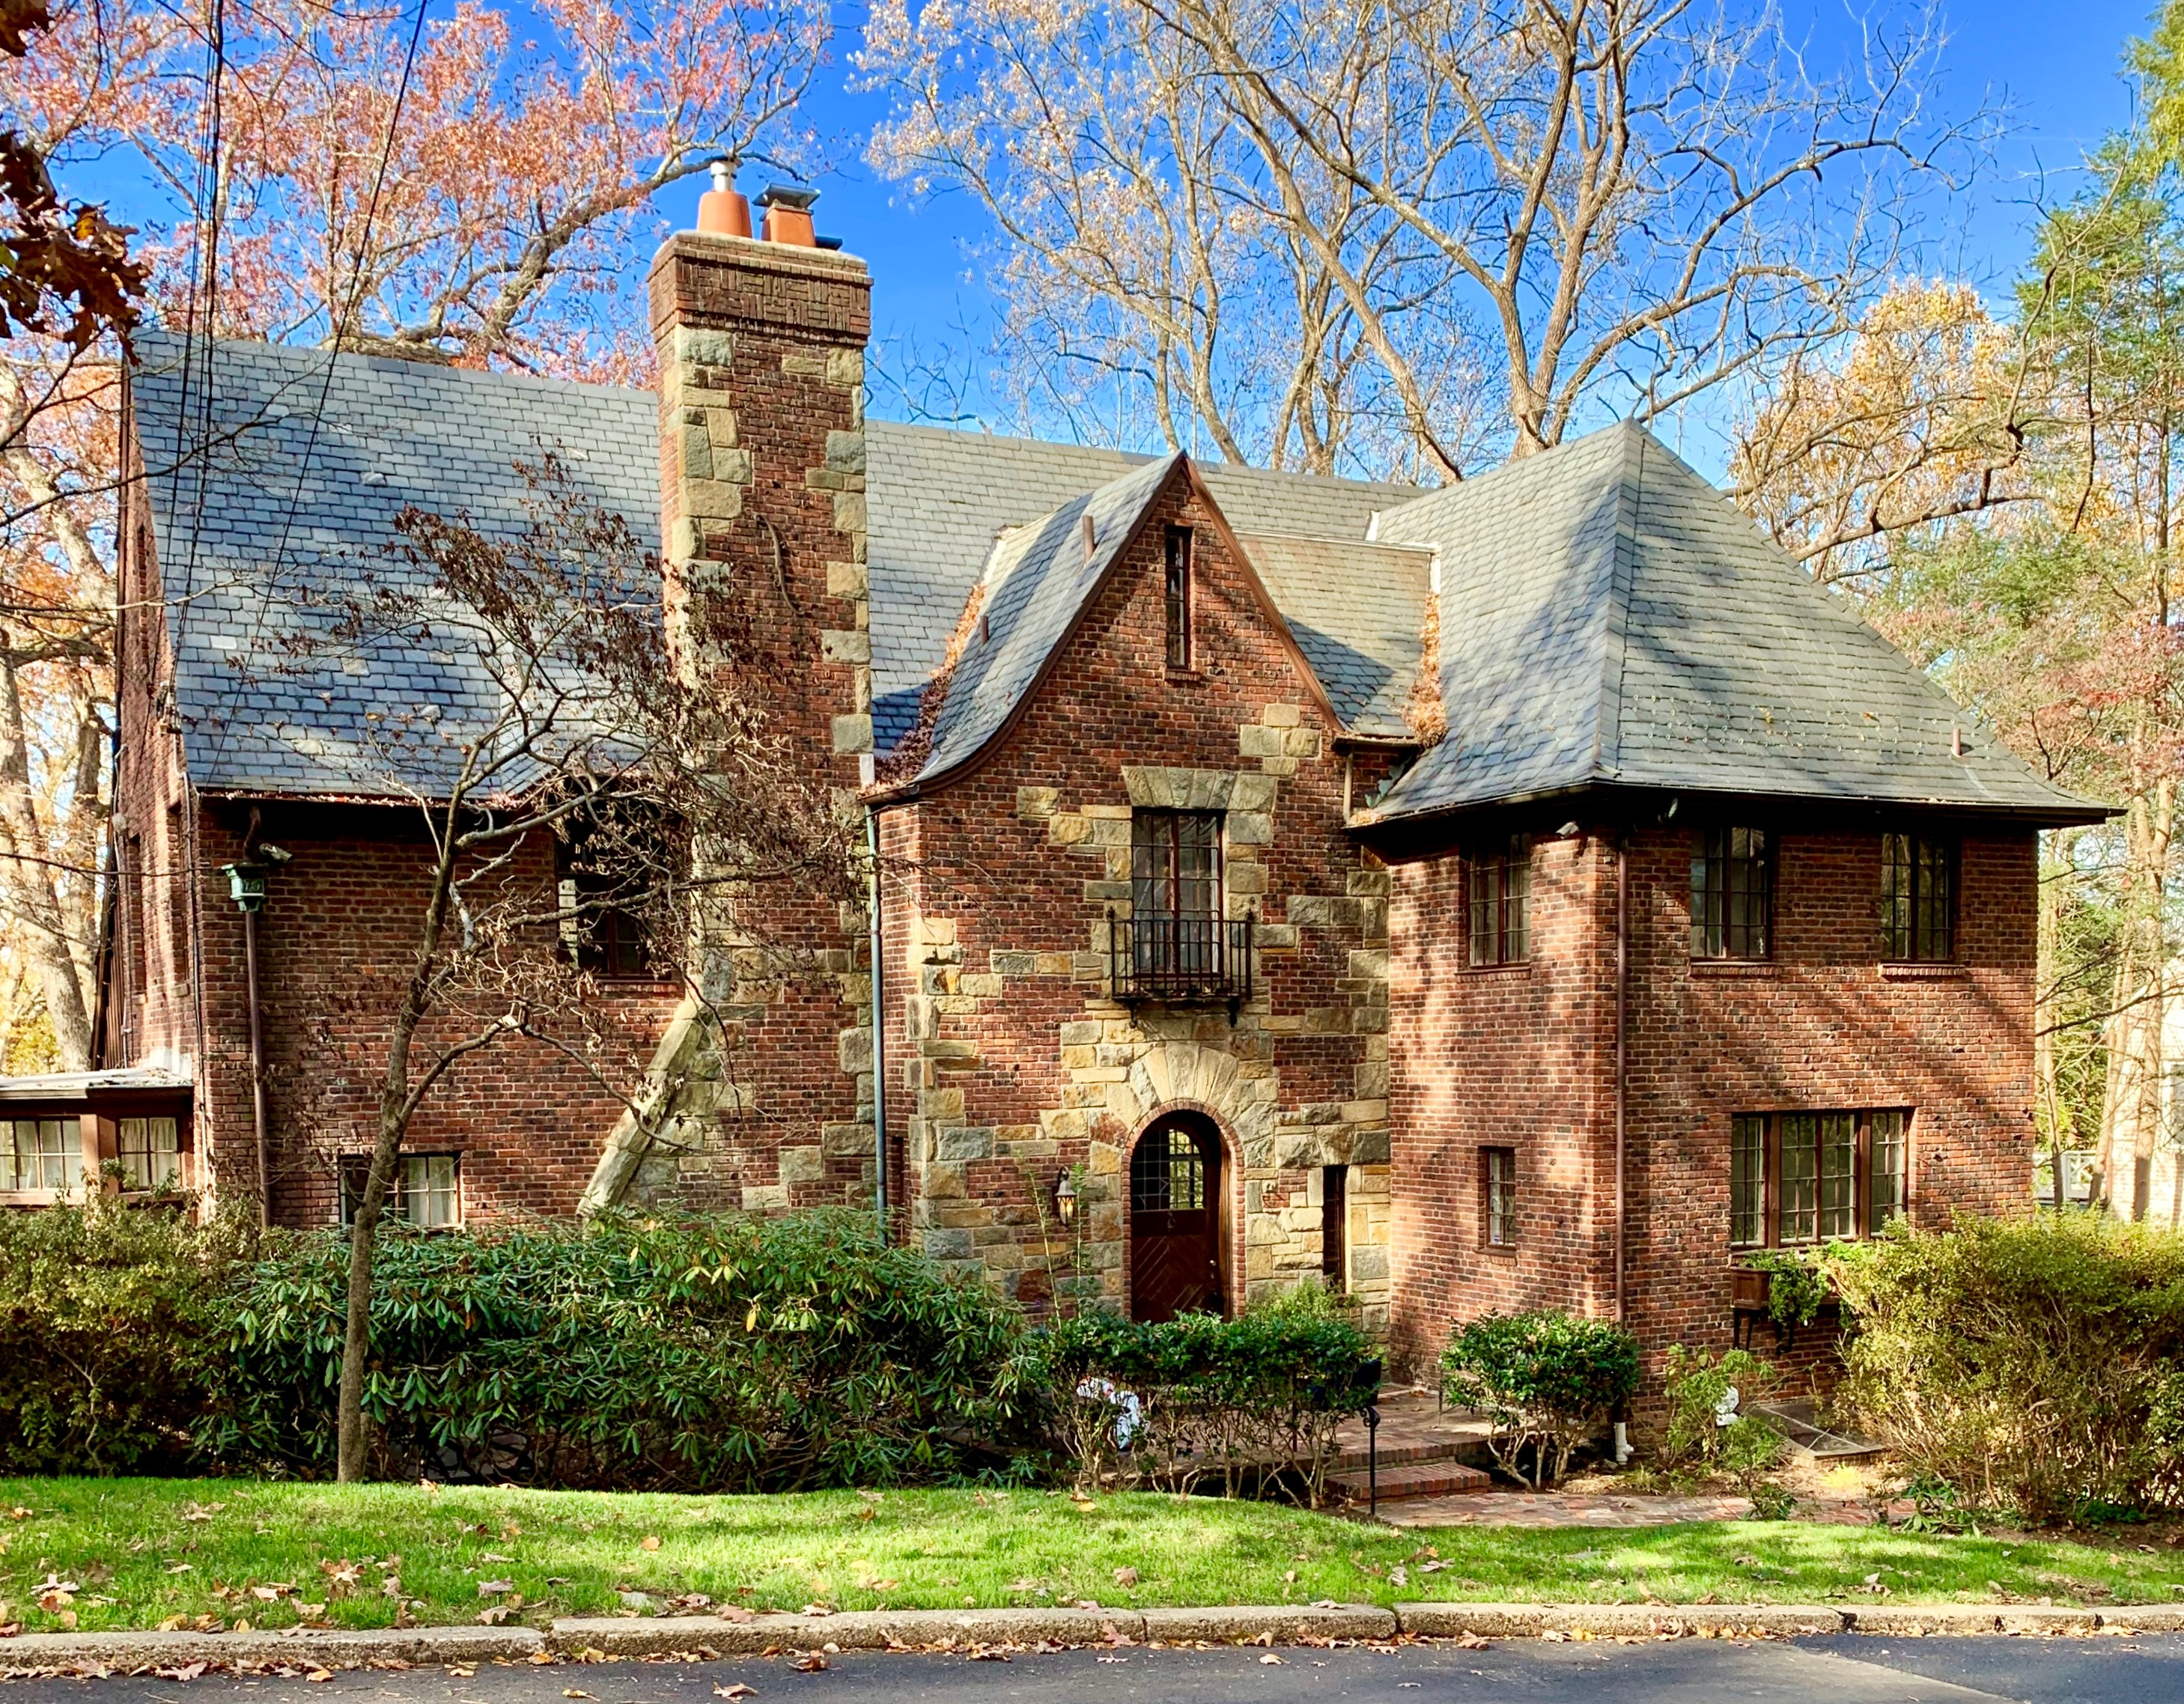 Washington, DC Detached Homes For Sale. Holly St in Colonial Village. Art Shmatko Luxury Real Estate Agent